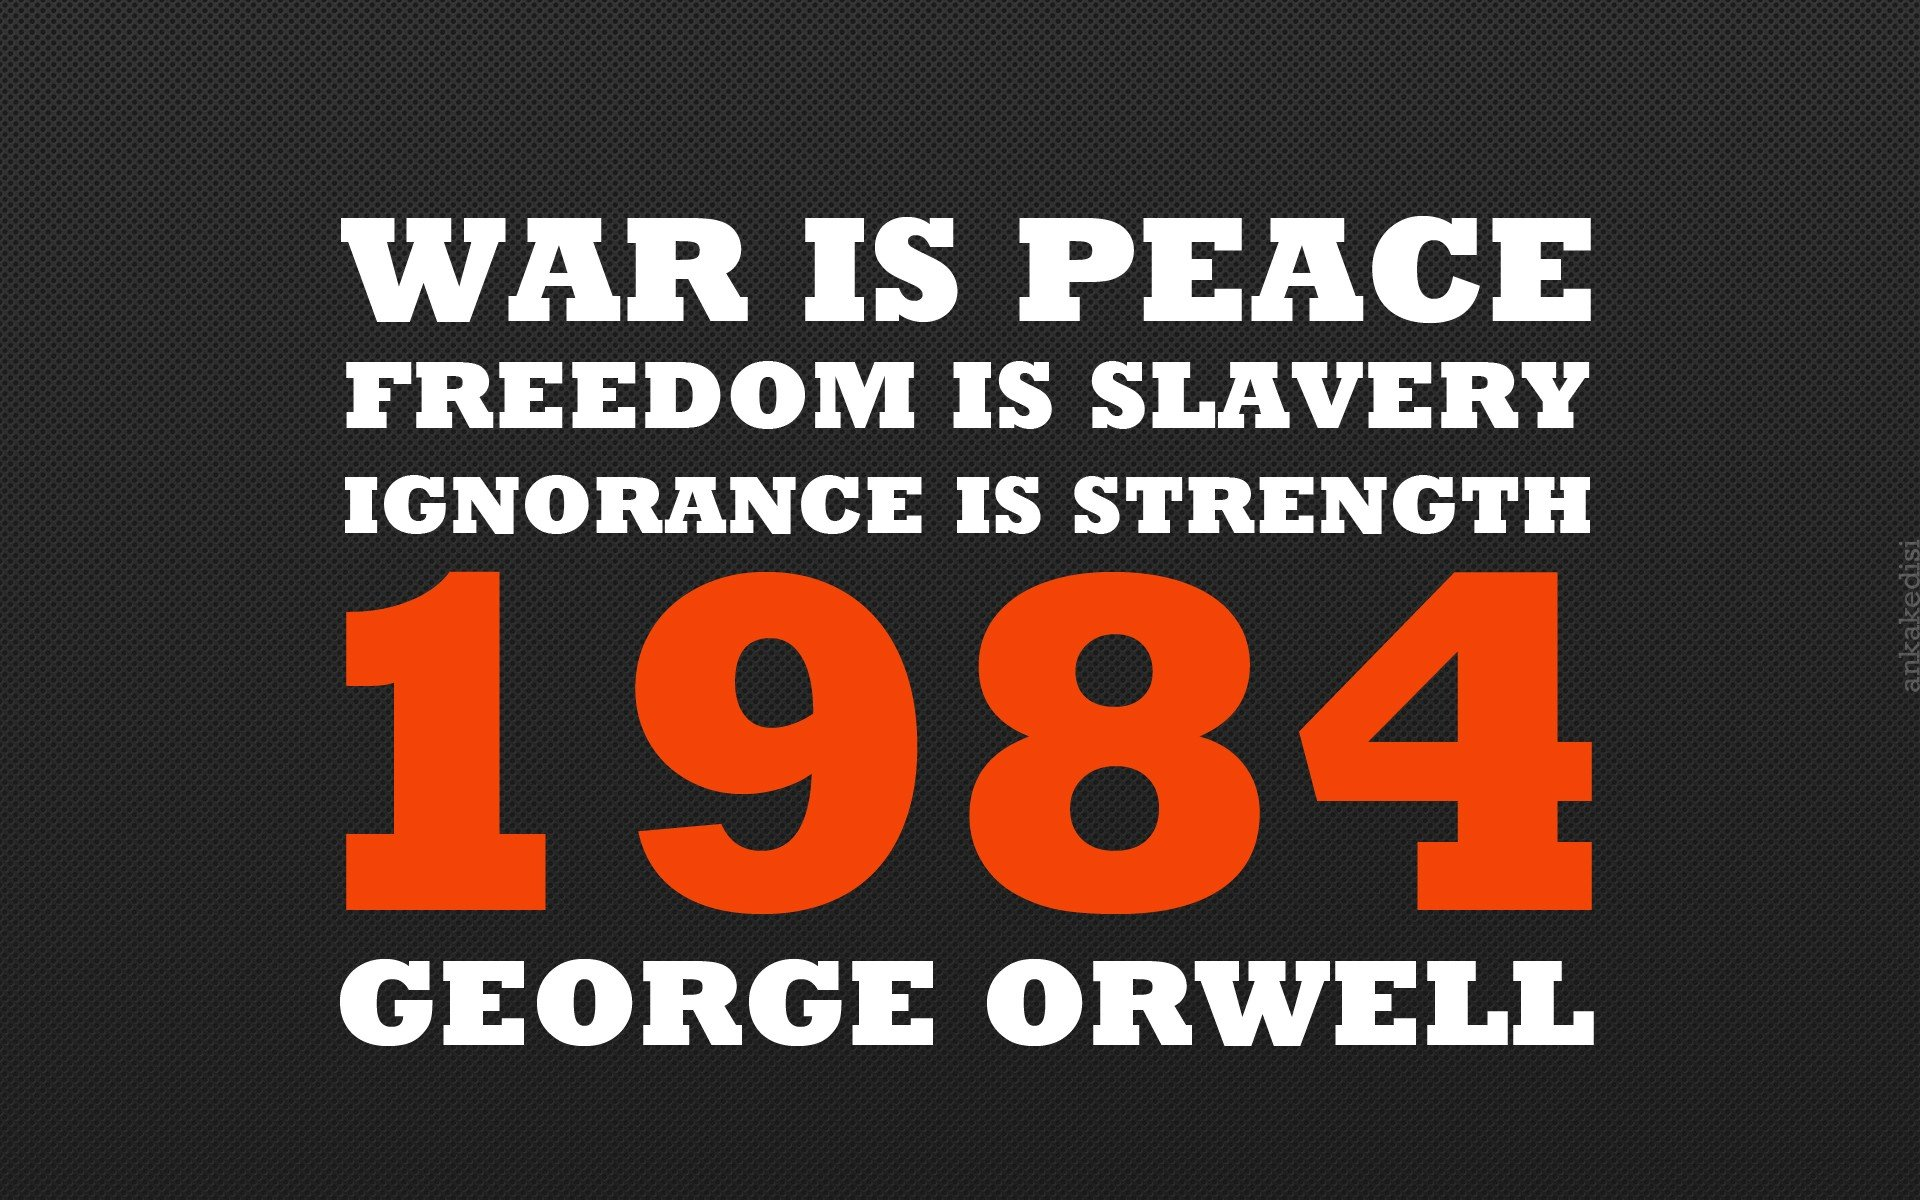 Truth Wallpapers With Quotes George Orwell Slavery War Peace 1984 Books Quote